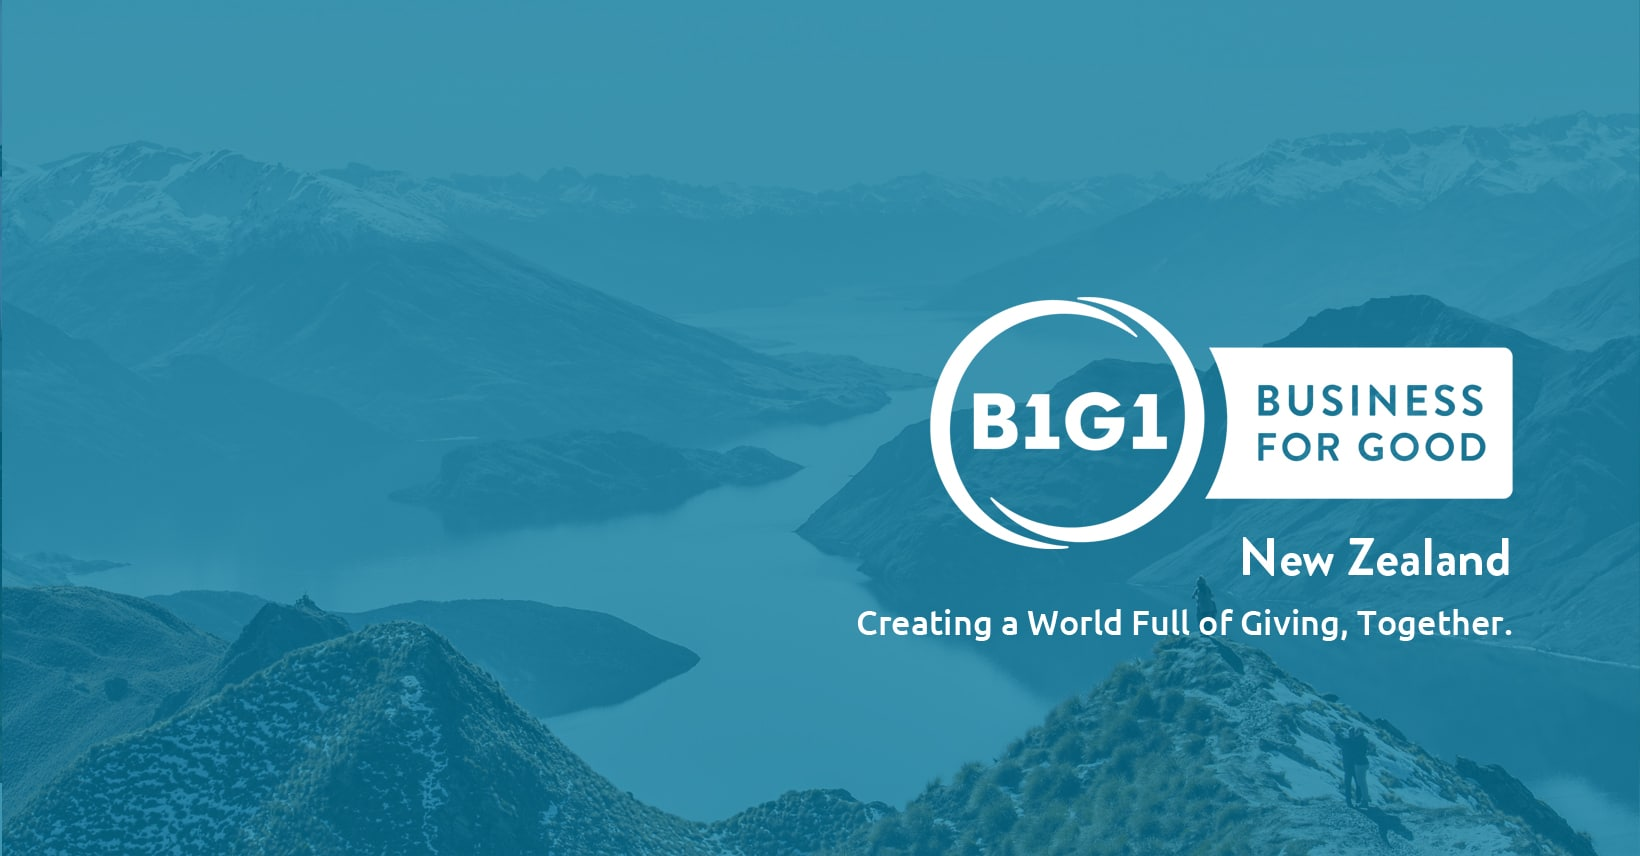 How to add B1G1 into your business/website